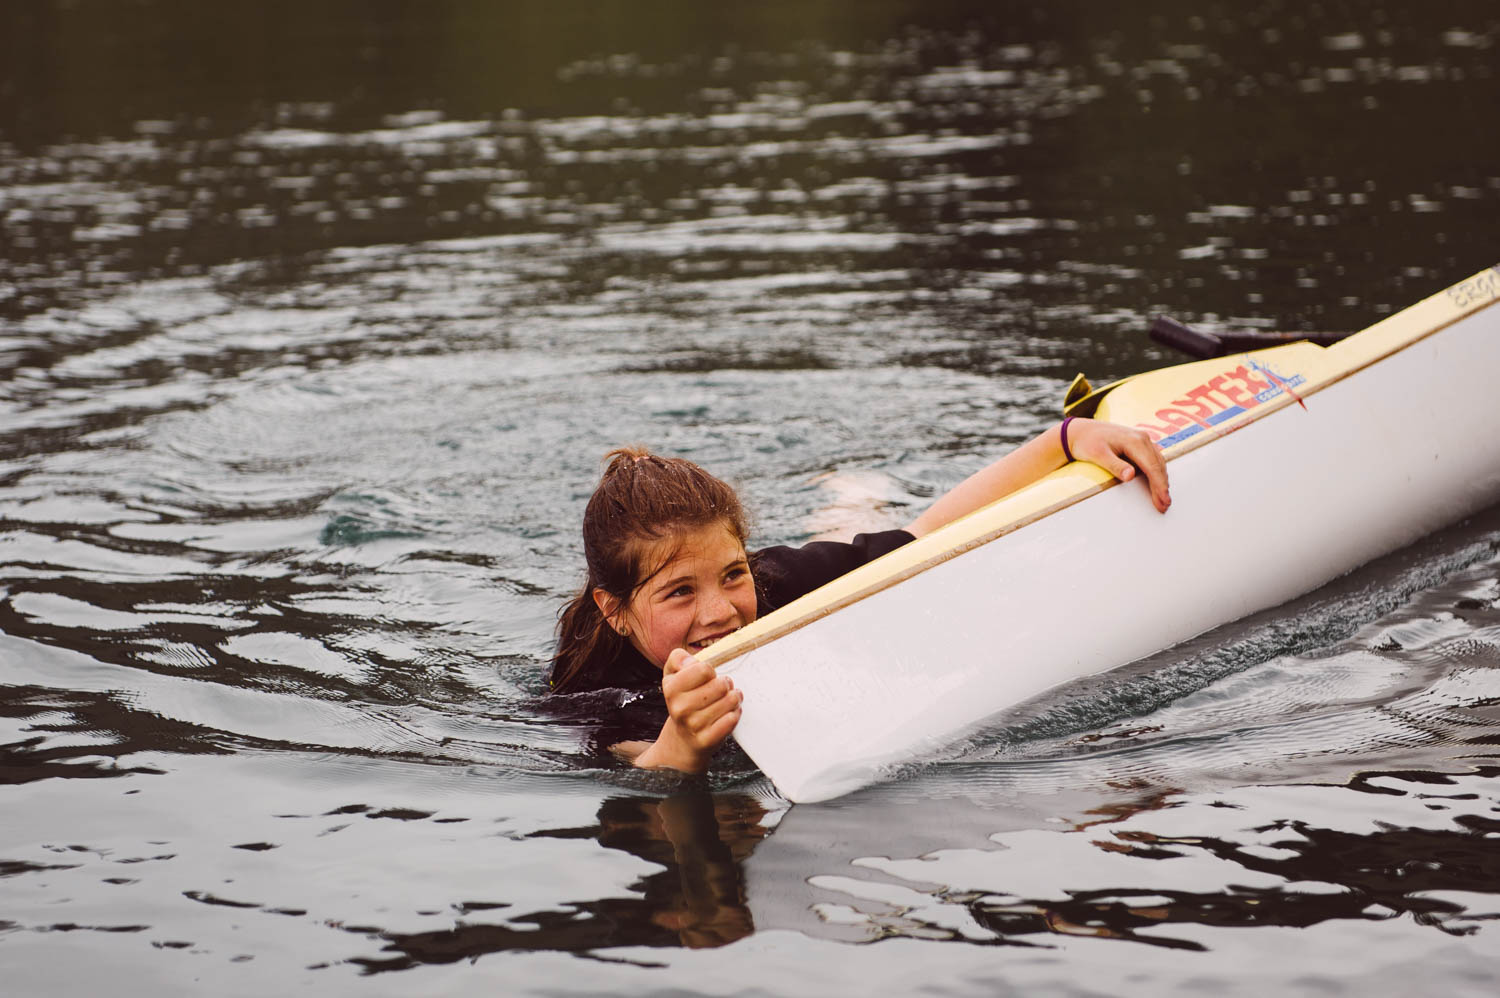 Falling in the cold water is part of the learning curve, especially with the competition boats!